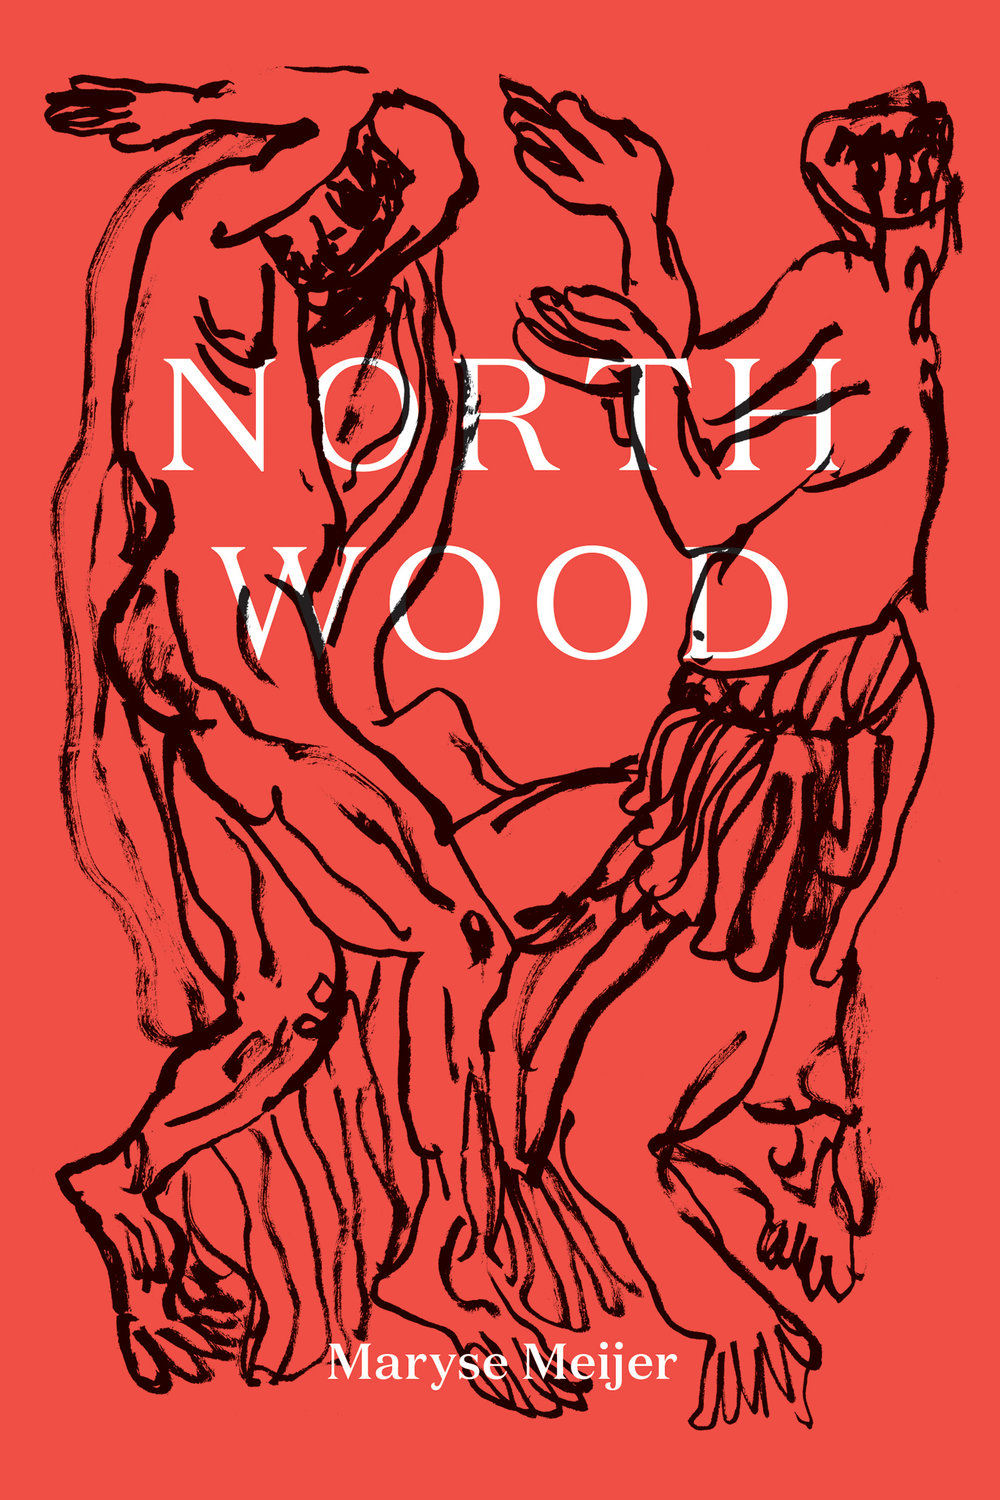 Northwood - By Maryse MeijerPart fairy tale, part horror story, Northwood is a genre-breaking novella told in short, brilliant, beautifully strange passages. The narrator, a young woman, has fled to the forest to pursue her artwork in isolation. While there, she falls in love with a married man she meets at a country dance. The man is violent, their affair even more so. As she struggles to free herself, she questions the difference between desire and obsession—and the brutal nature of intimacy. Packaged with a cover and end papers by famed English artist Rufus Newell and inventive, white-on-black text treatments by award-winning designer Jonathan Yamakami, Northwood is a work of art as well as a literary marvel.